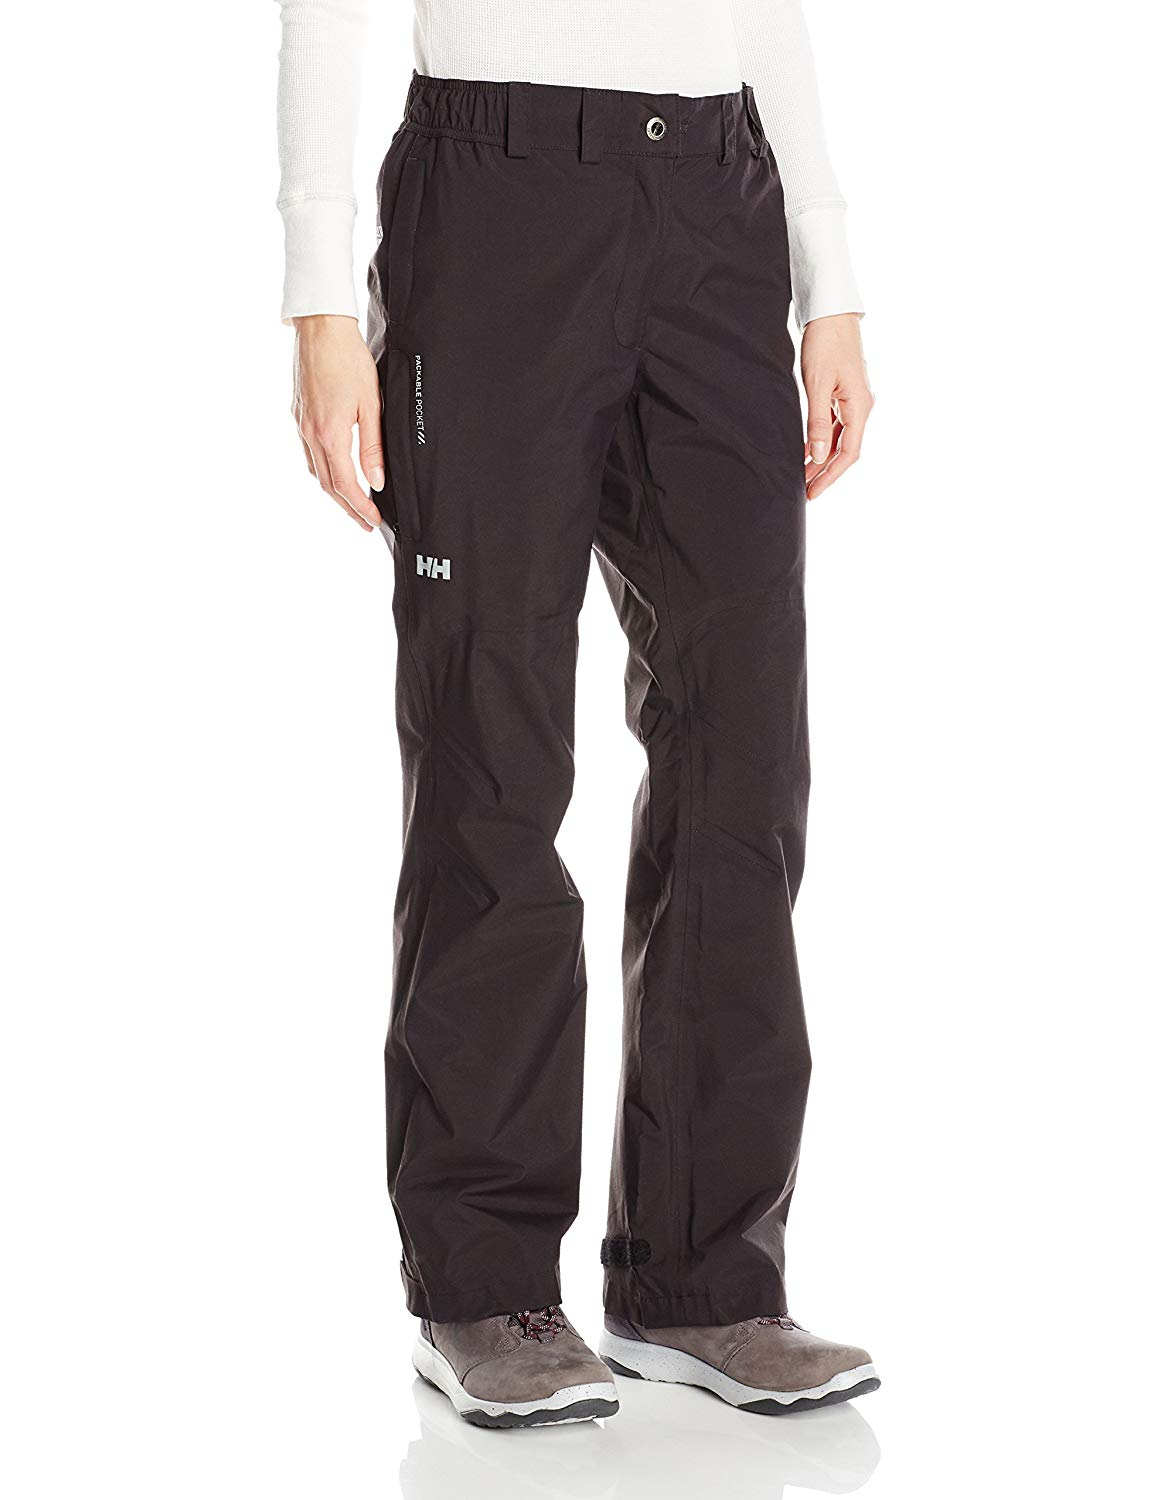 Helly Hansen Women's Packable Pants